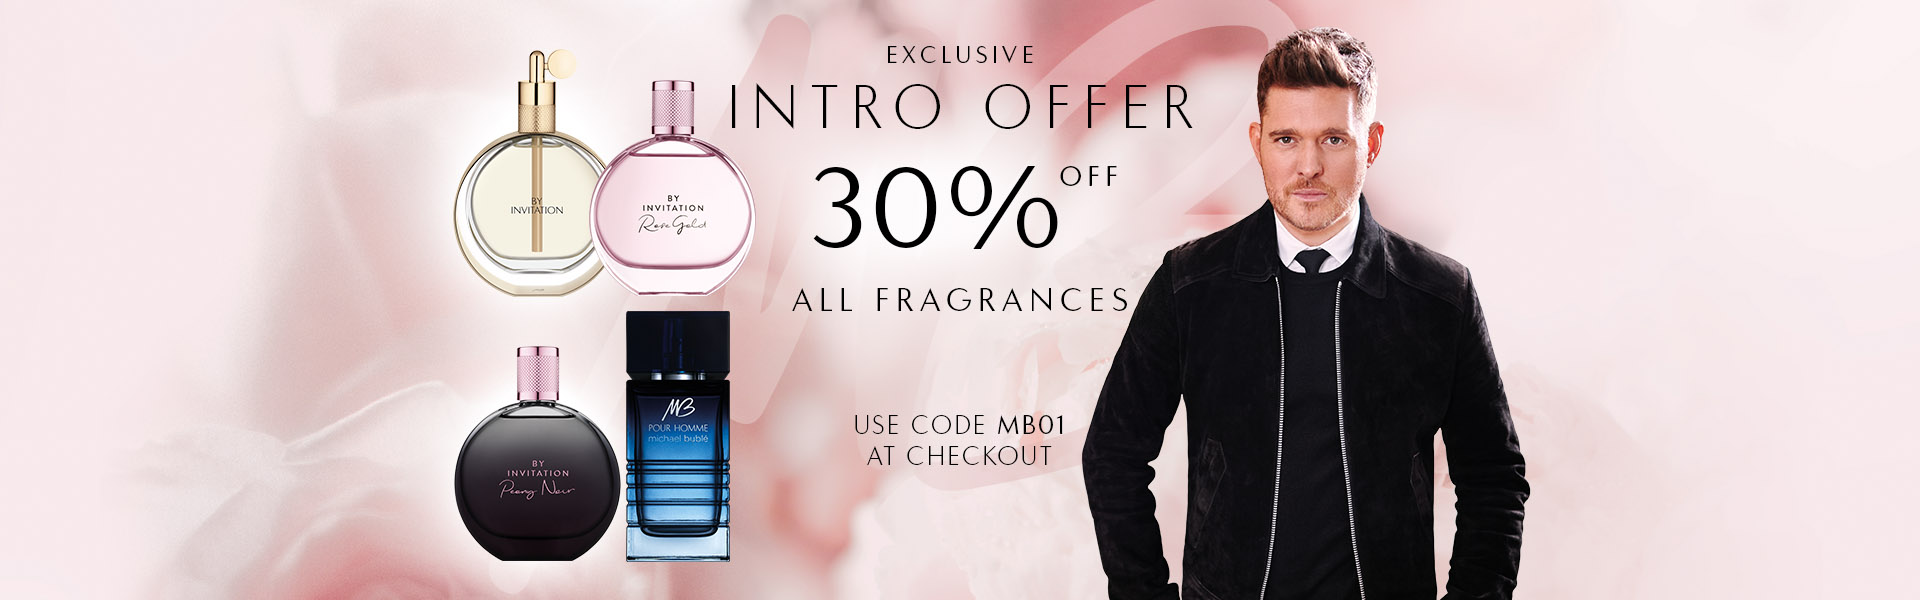 Exclusive Intro Offer